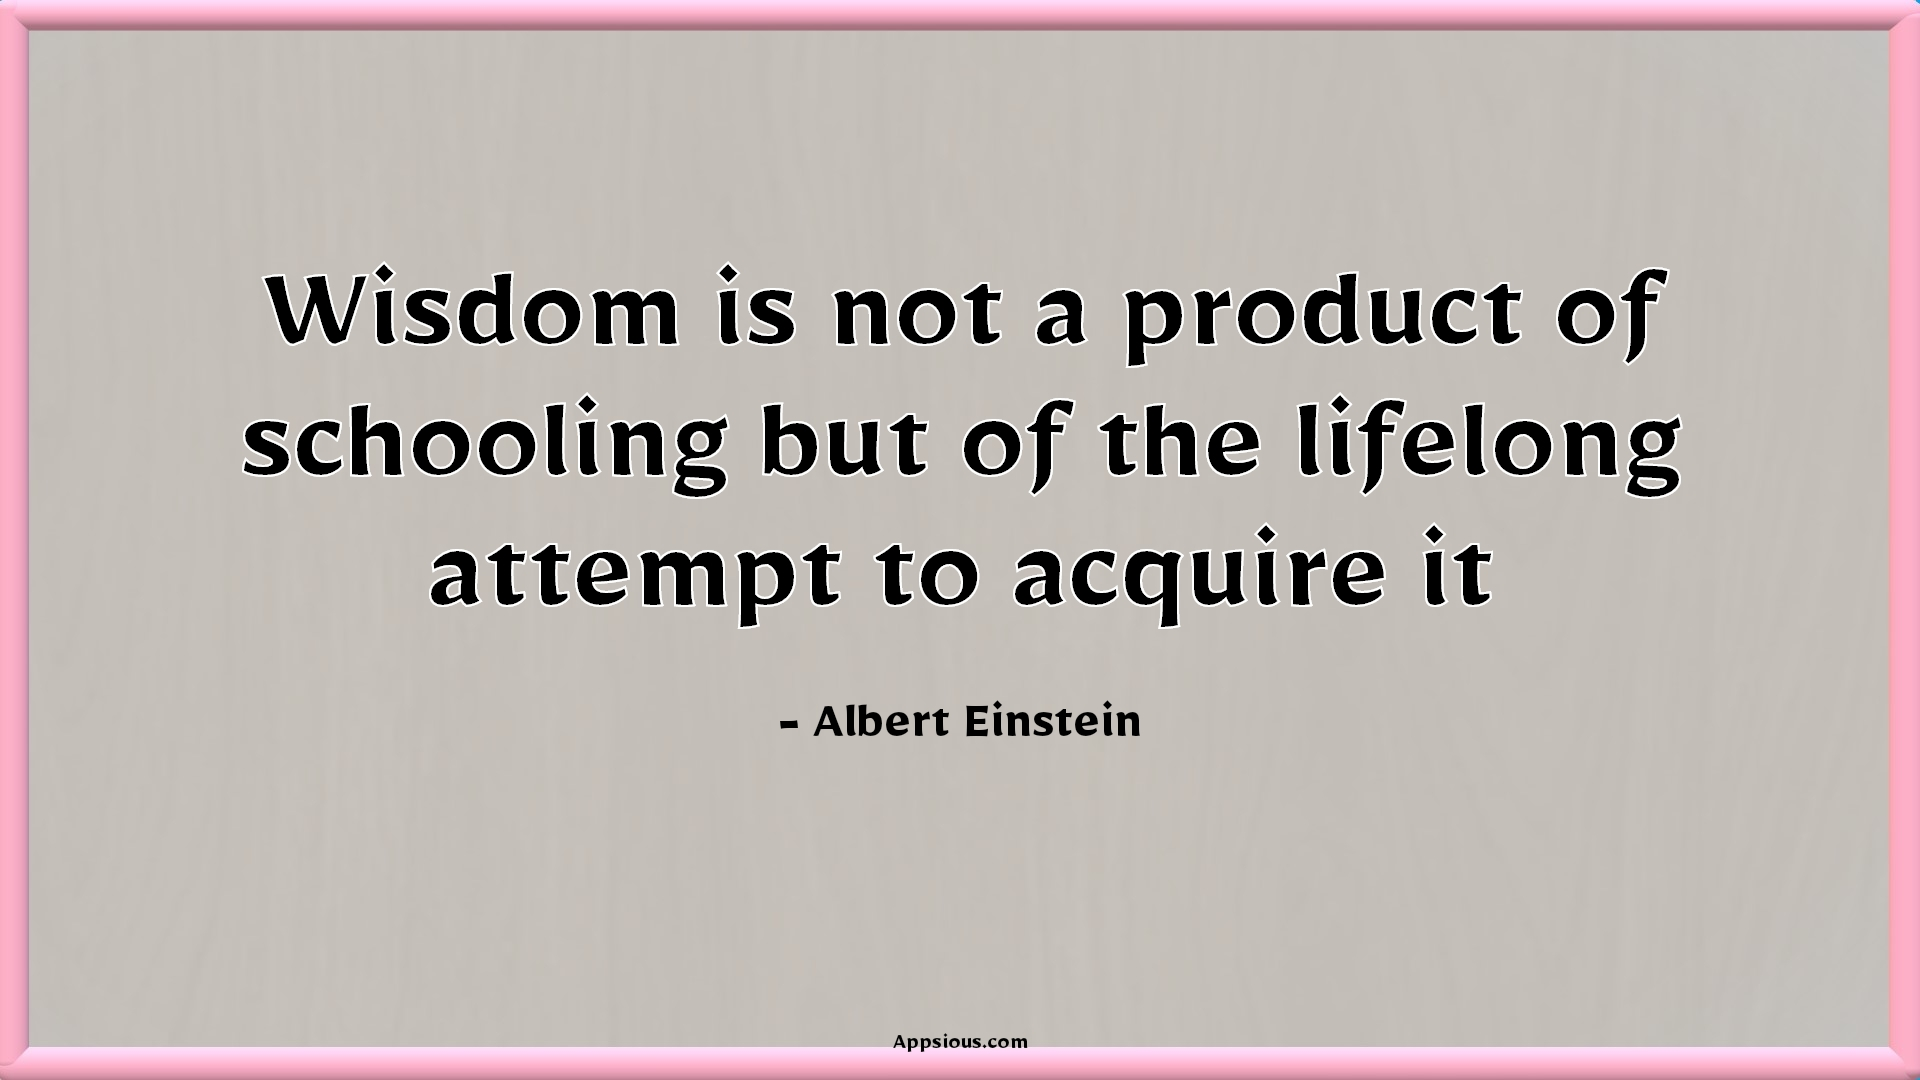 Wisdom is not a product of schooling but of the lifelong attempt to acquire it